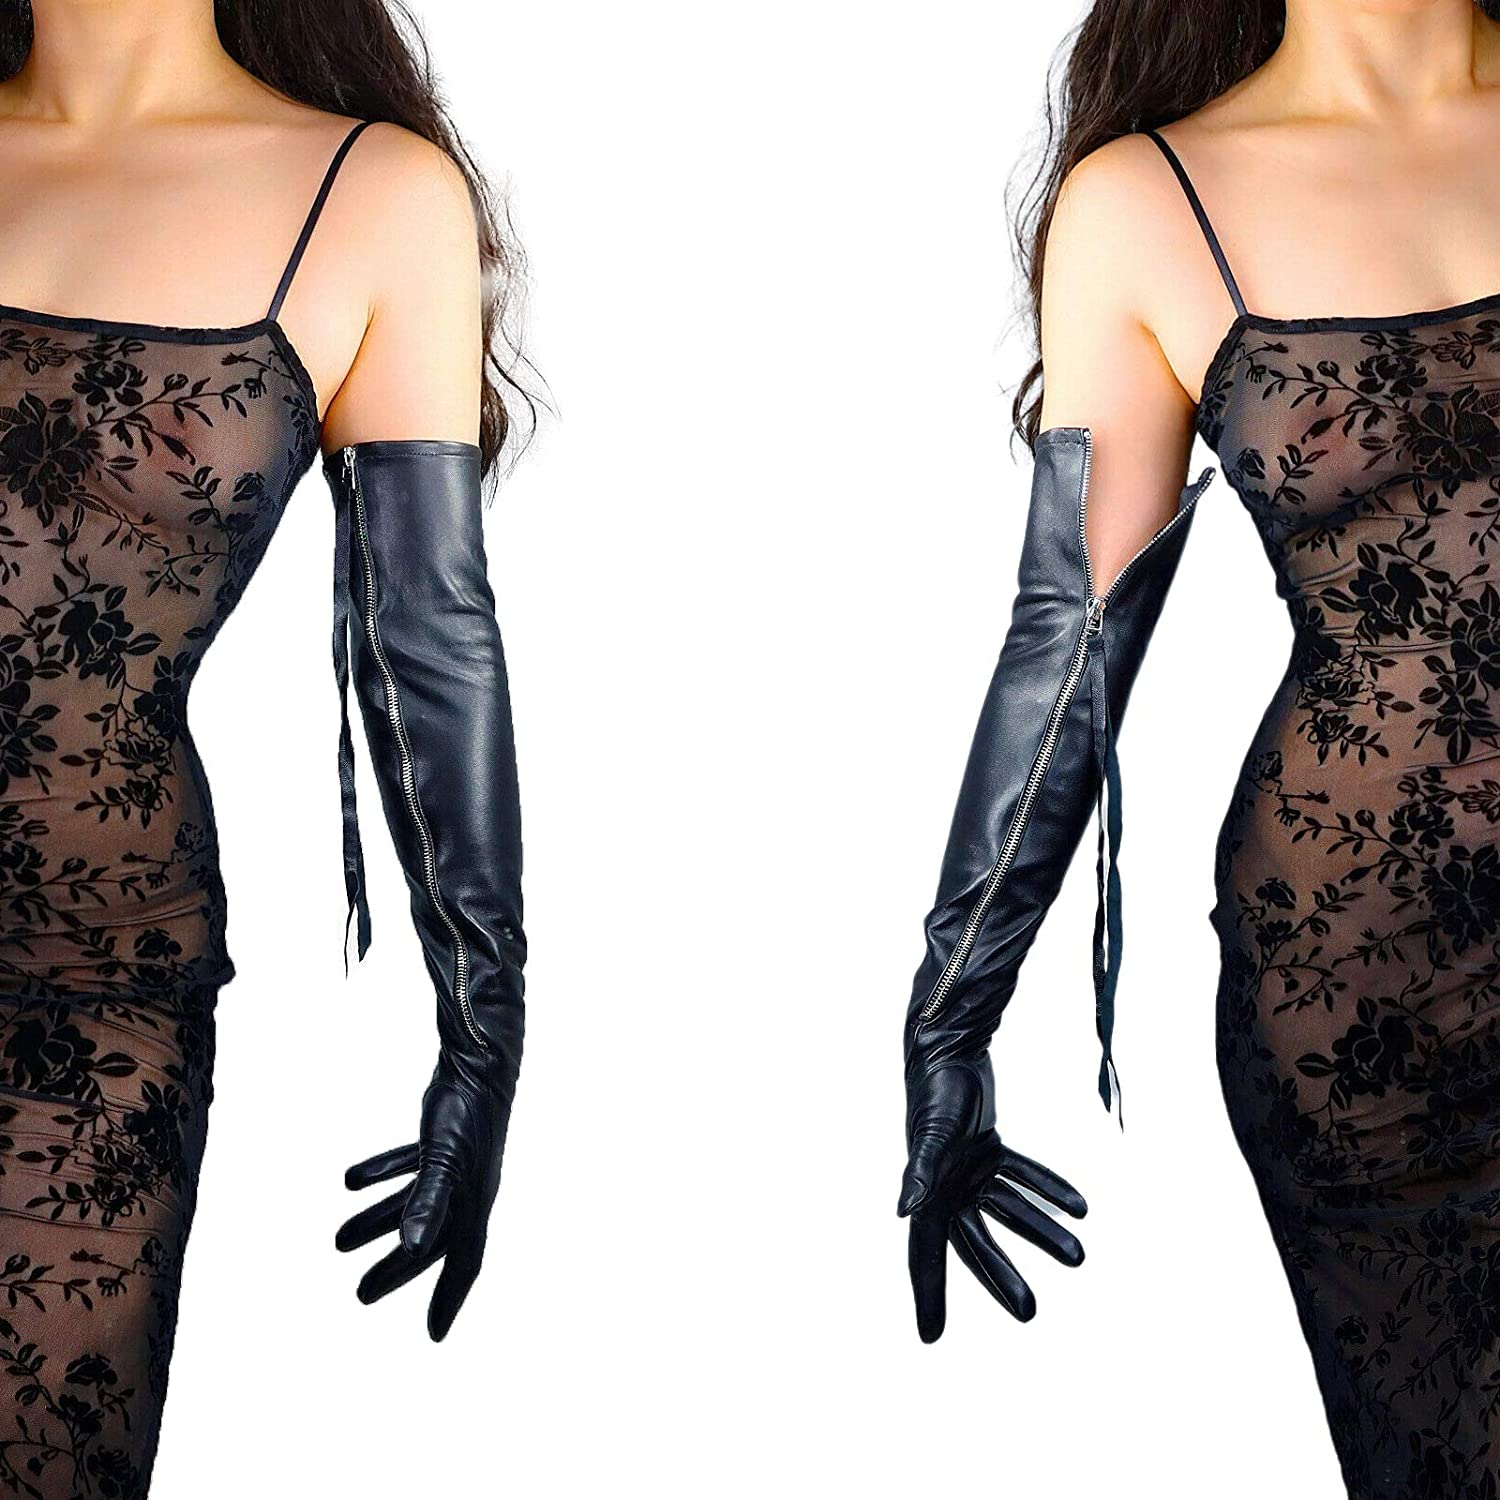 DooWay Opera Leather Gloves for Women Full Long Zipper Sleeves Fashion Comfy Costume Pageant Event PU 24 inches